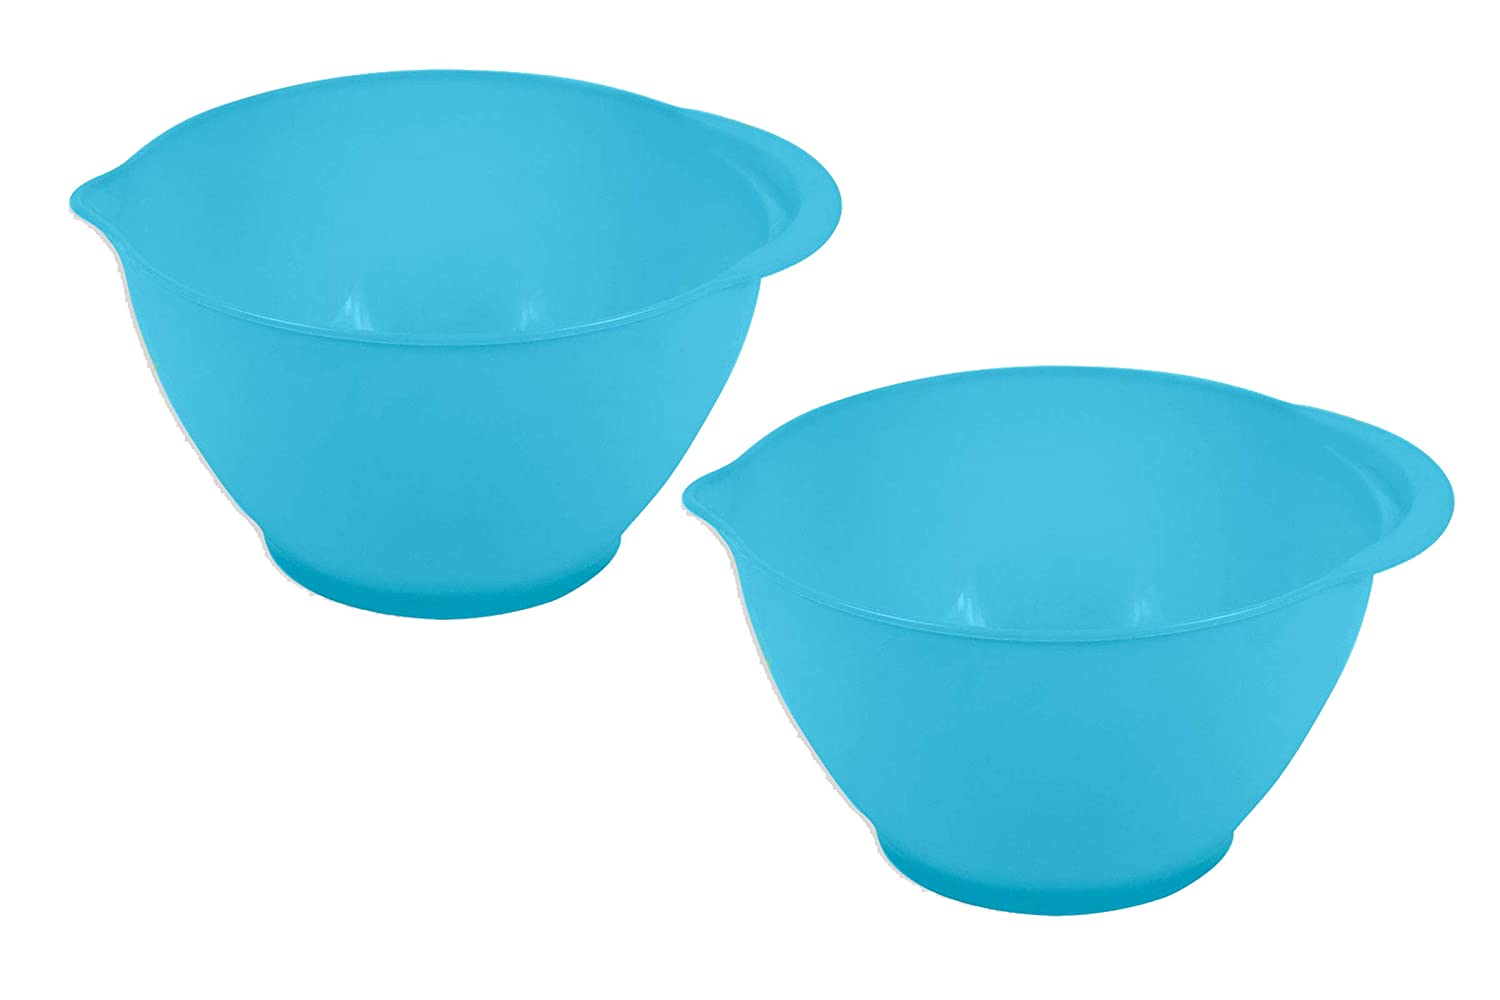 Brights Kitchen Mixing Bowl 20cm Diameter for Baking /& Cooking